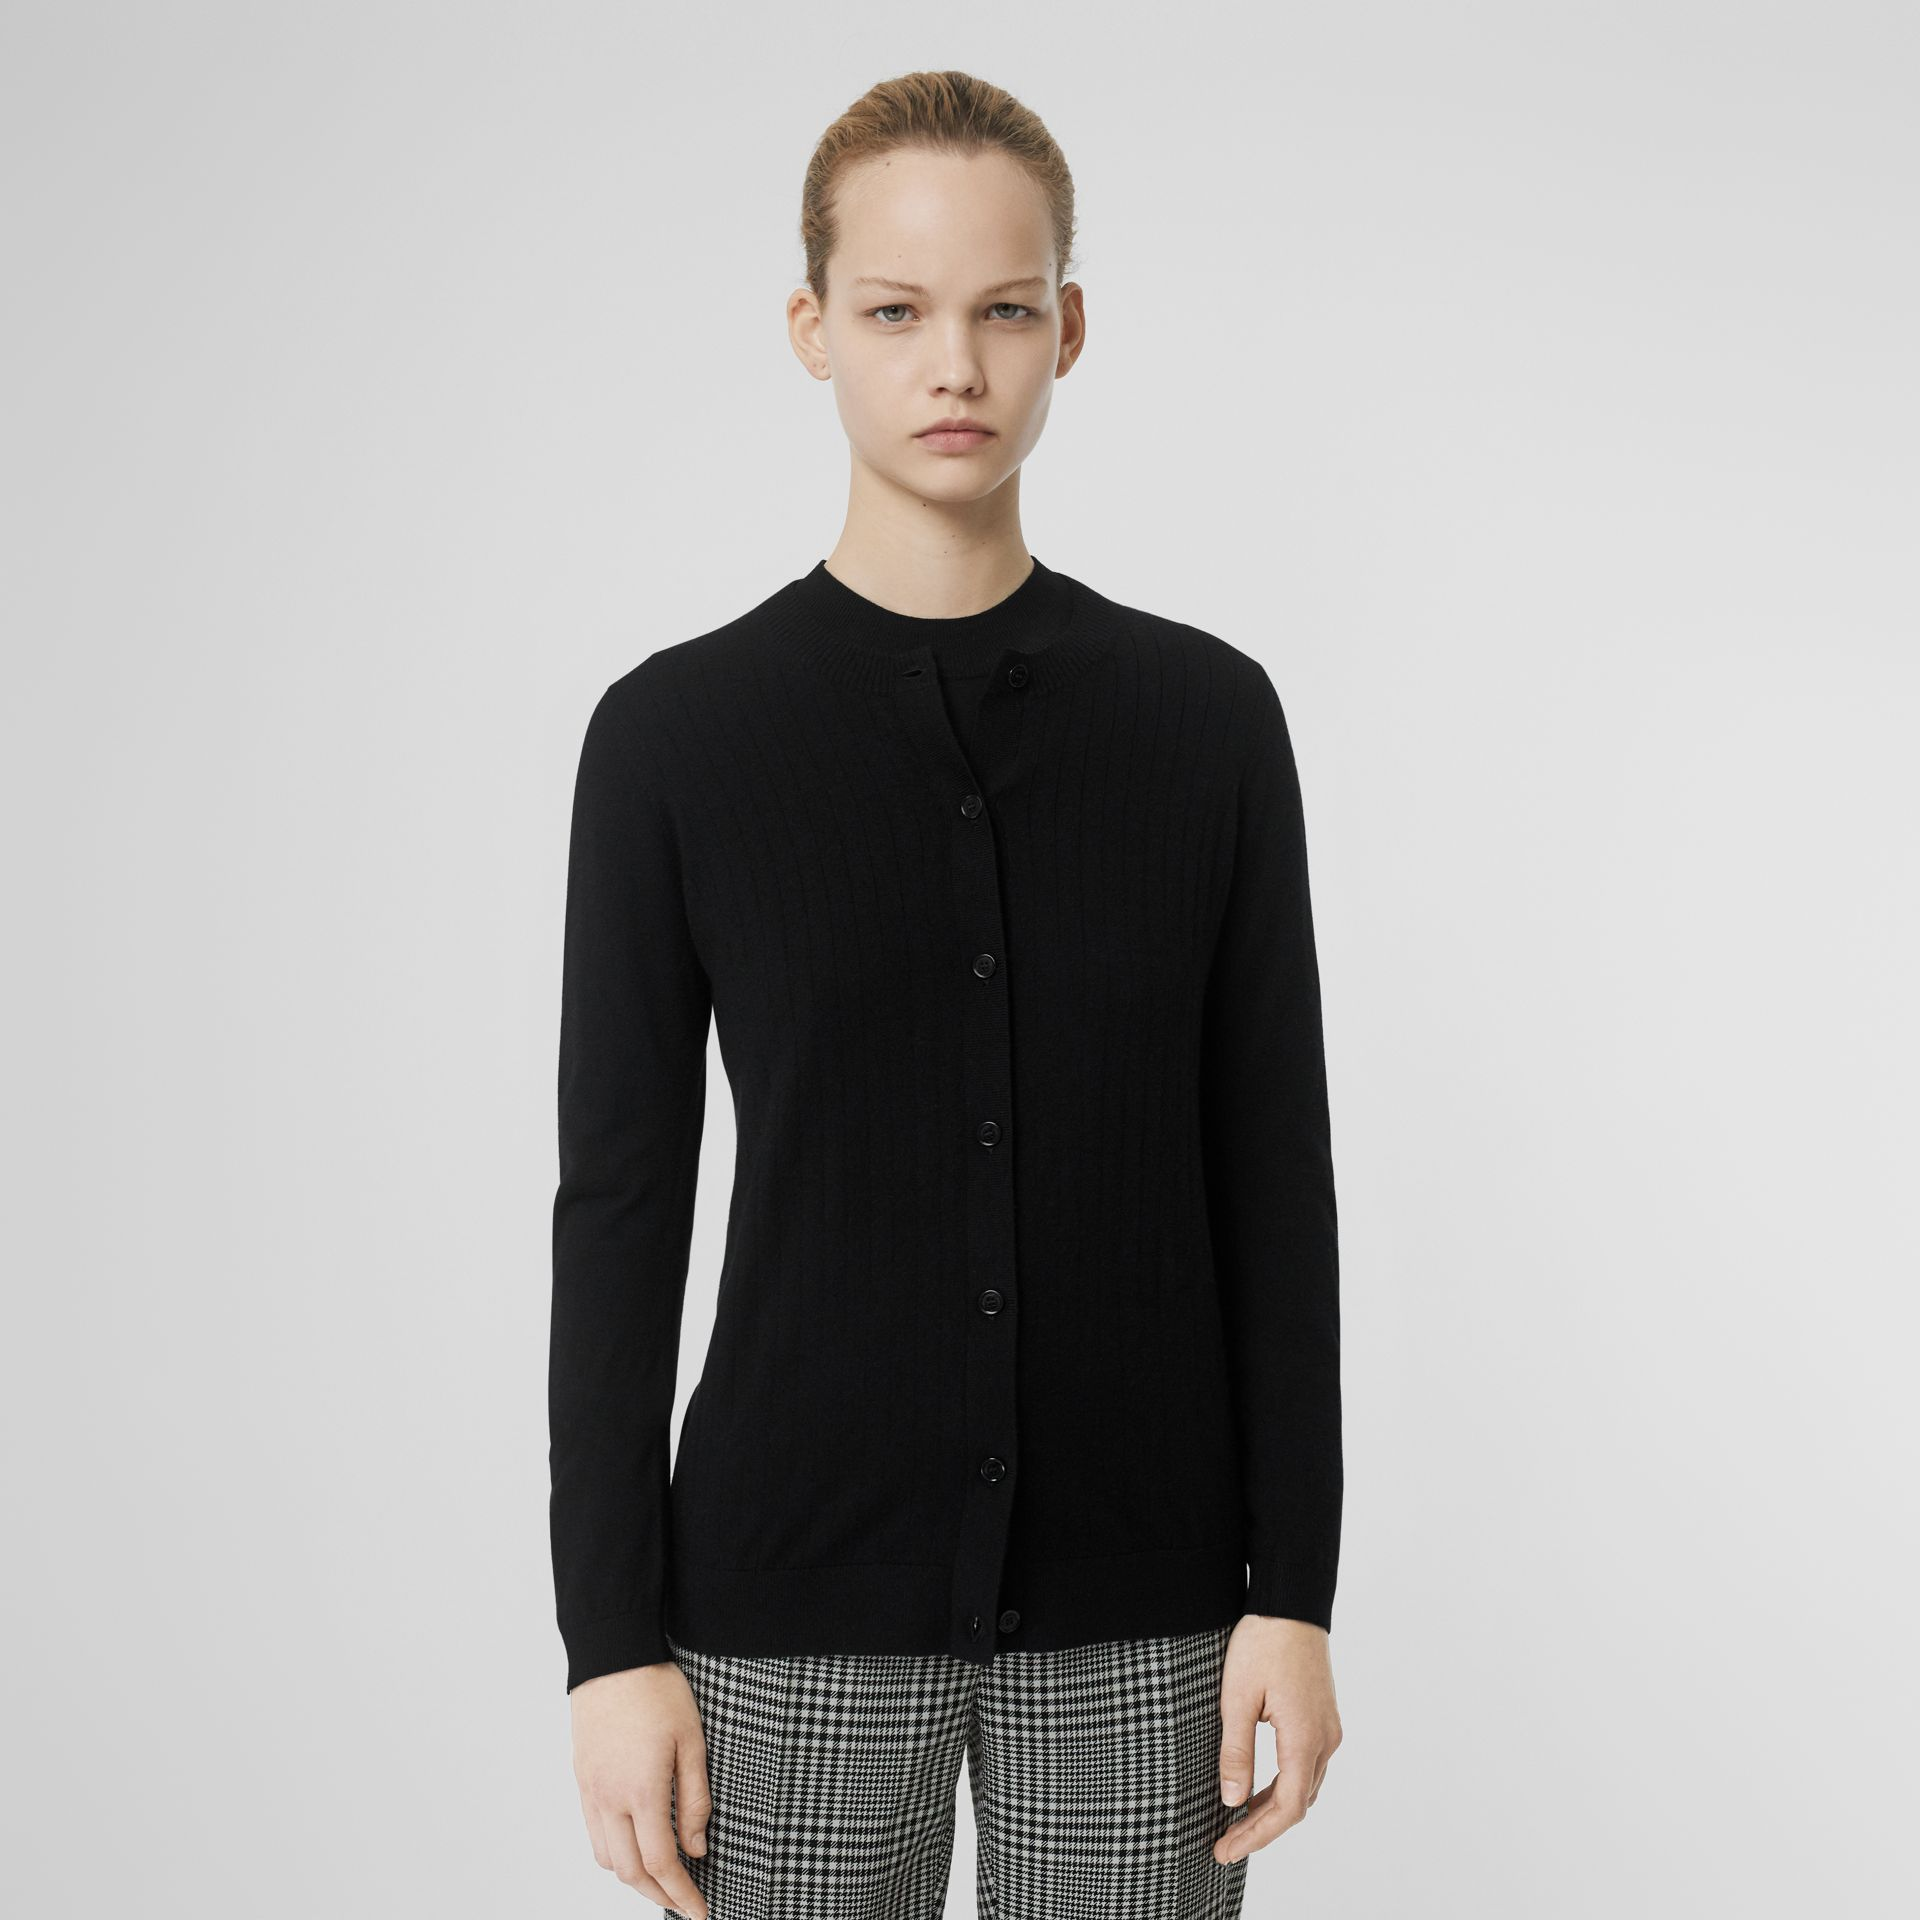 Rib Knit Cashmere Cardigan in Black - Women | Burberry United States - gallery image 5